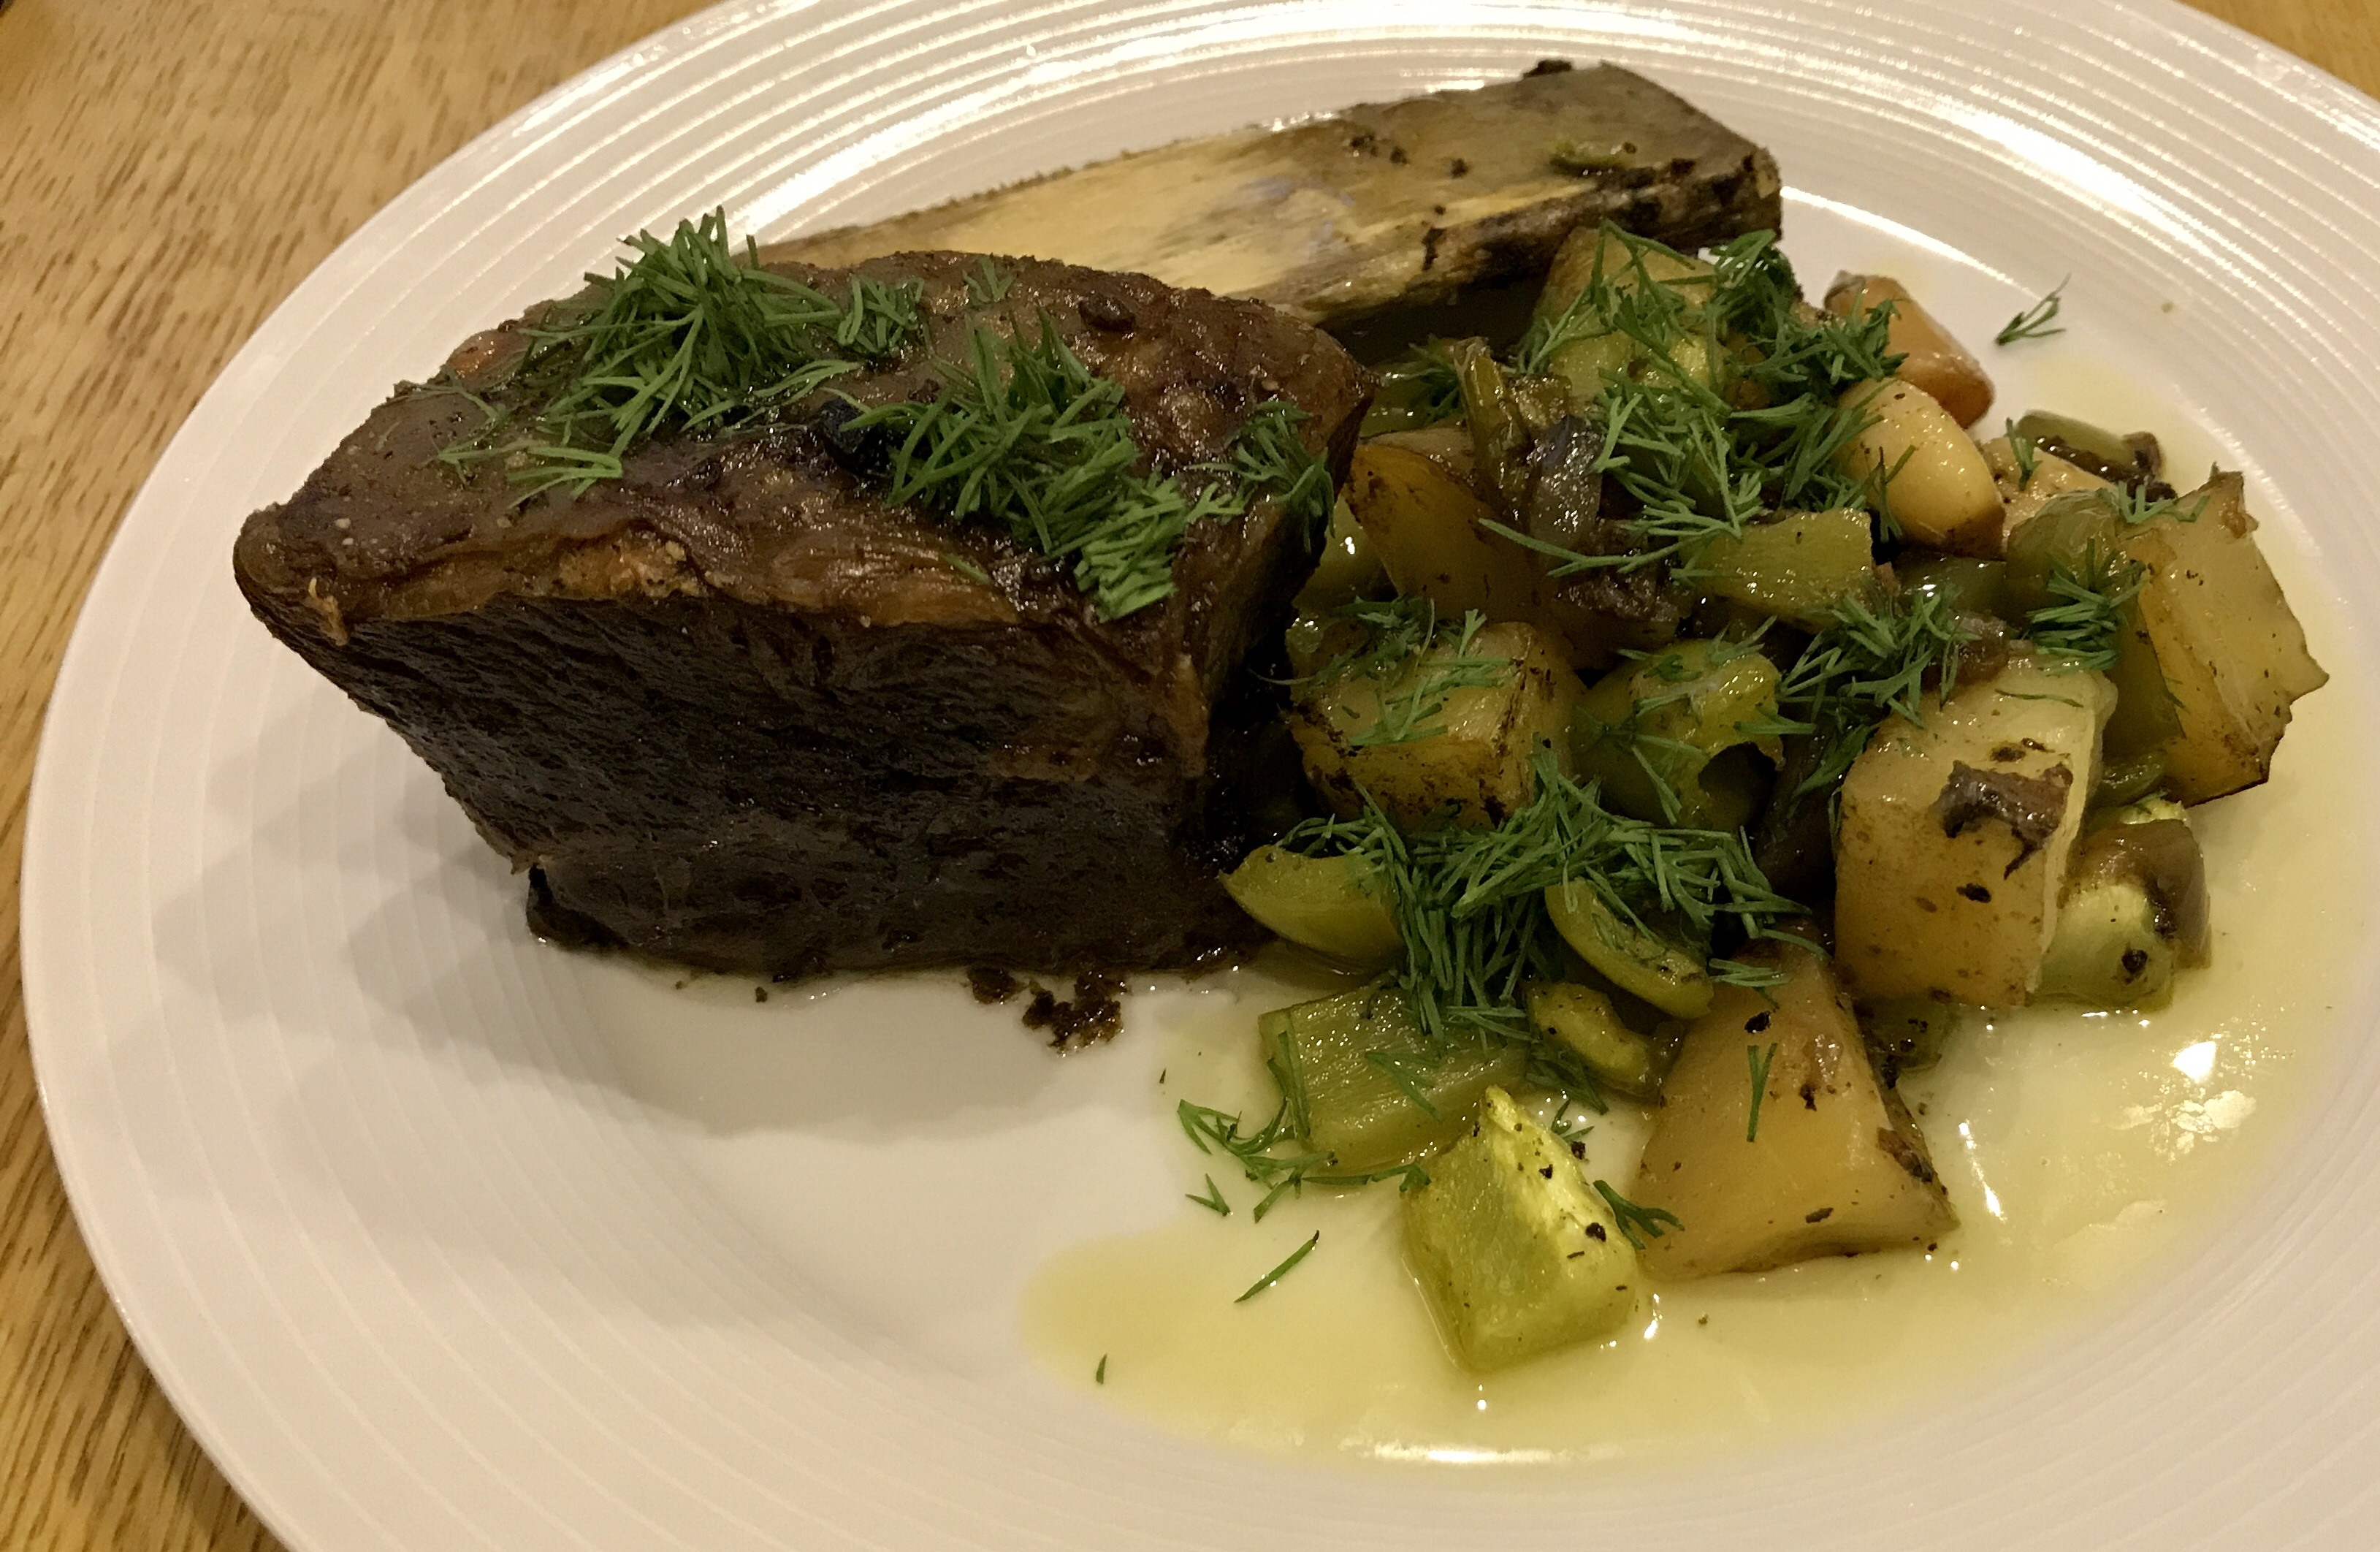 Slow-cooked beef short rib and potatoes recipe